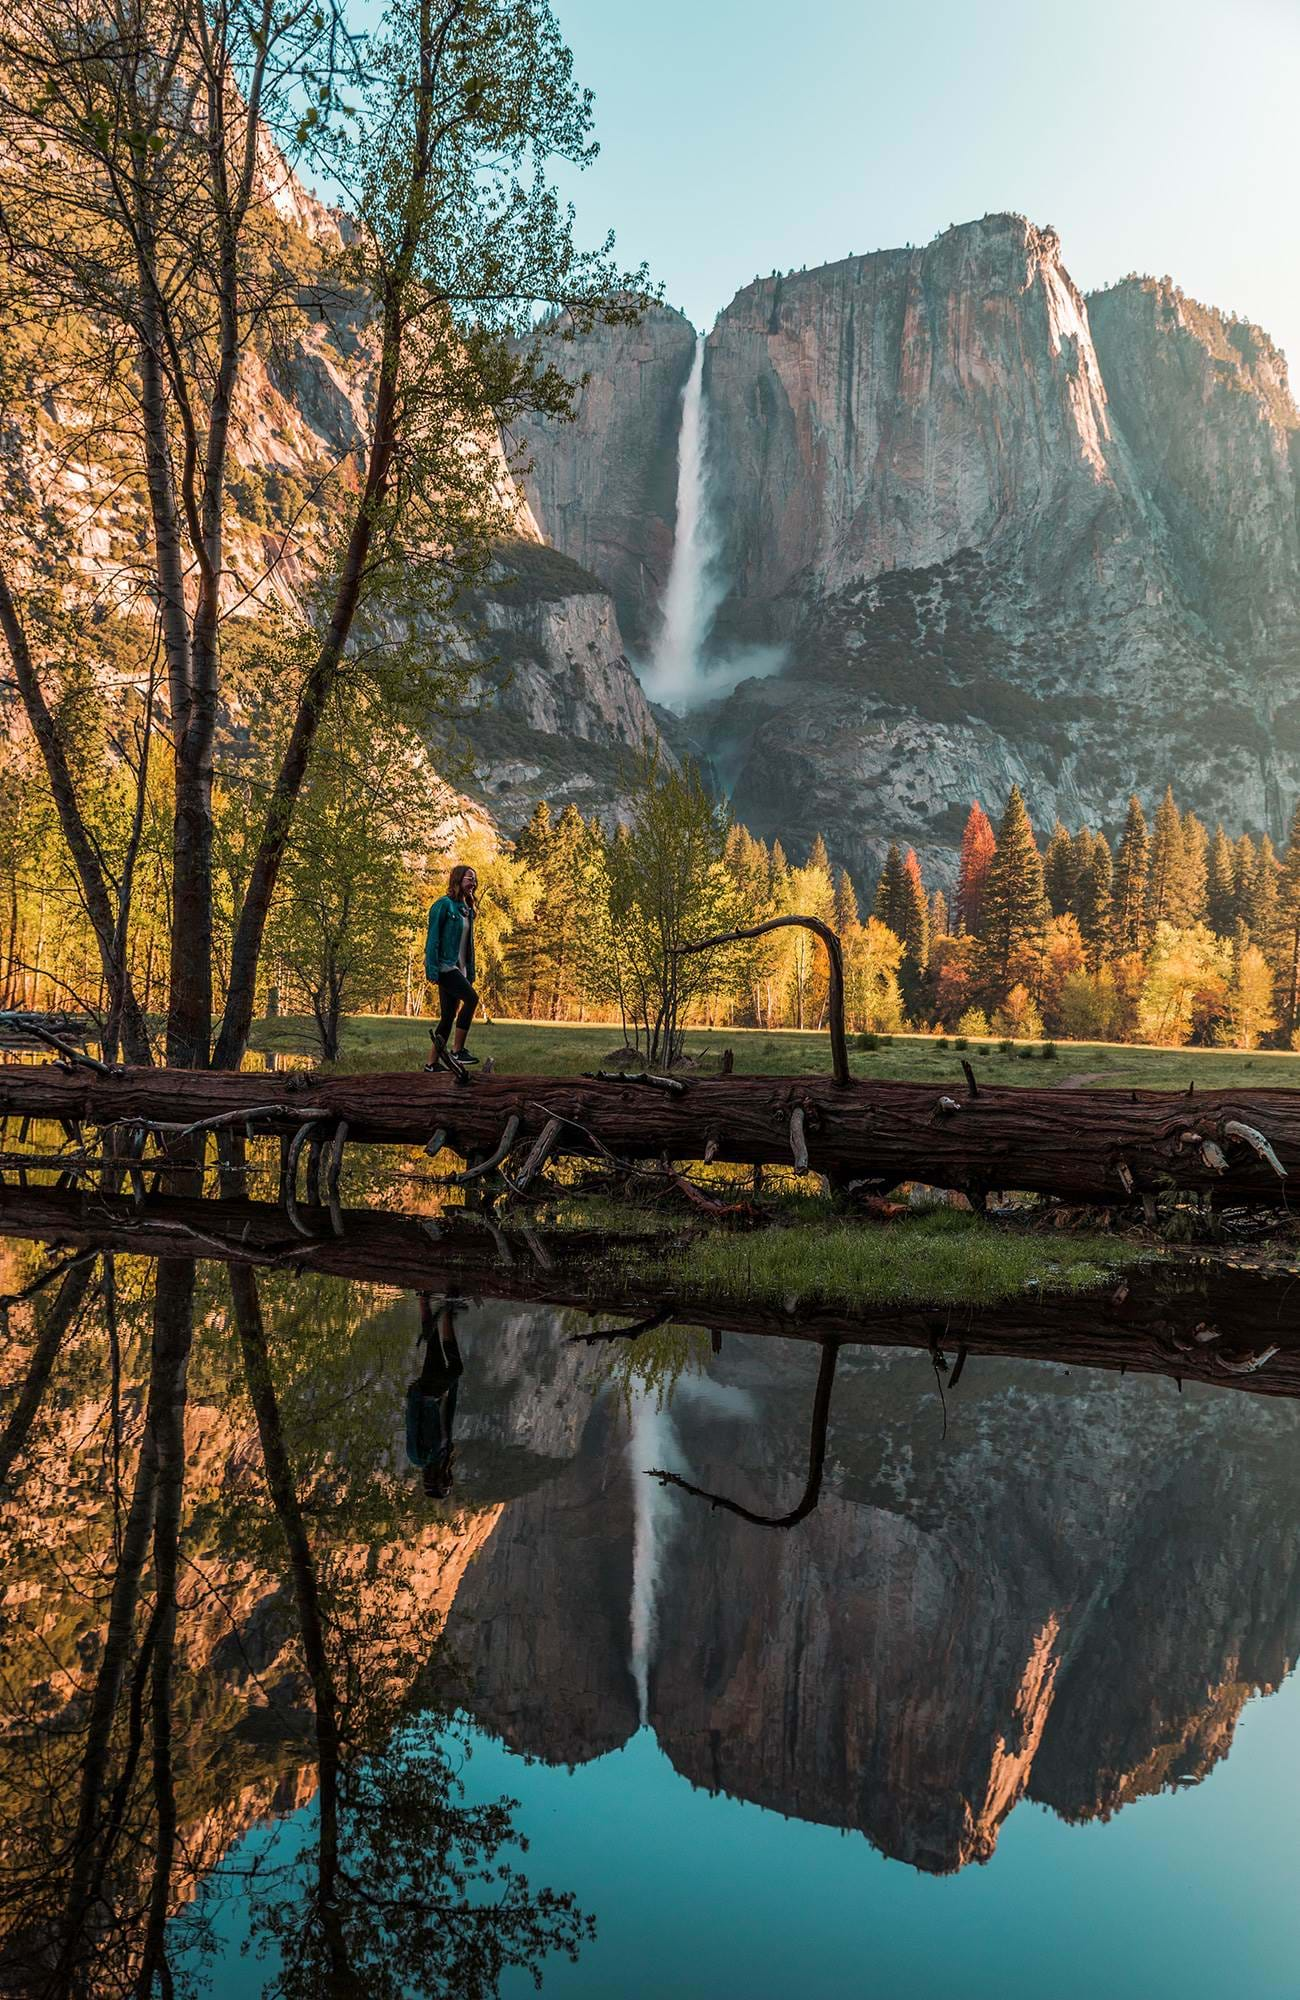 yosemite-national-park-yosemite-valley-autumn-sidebar